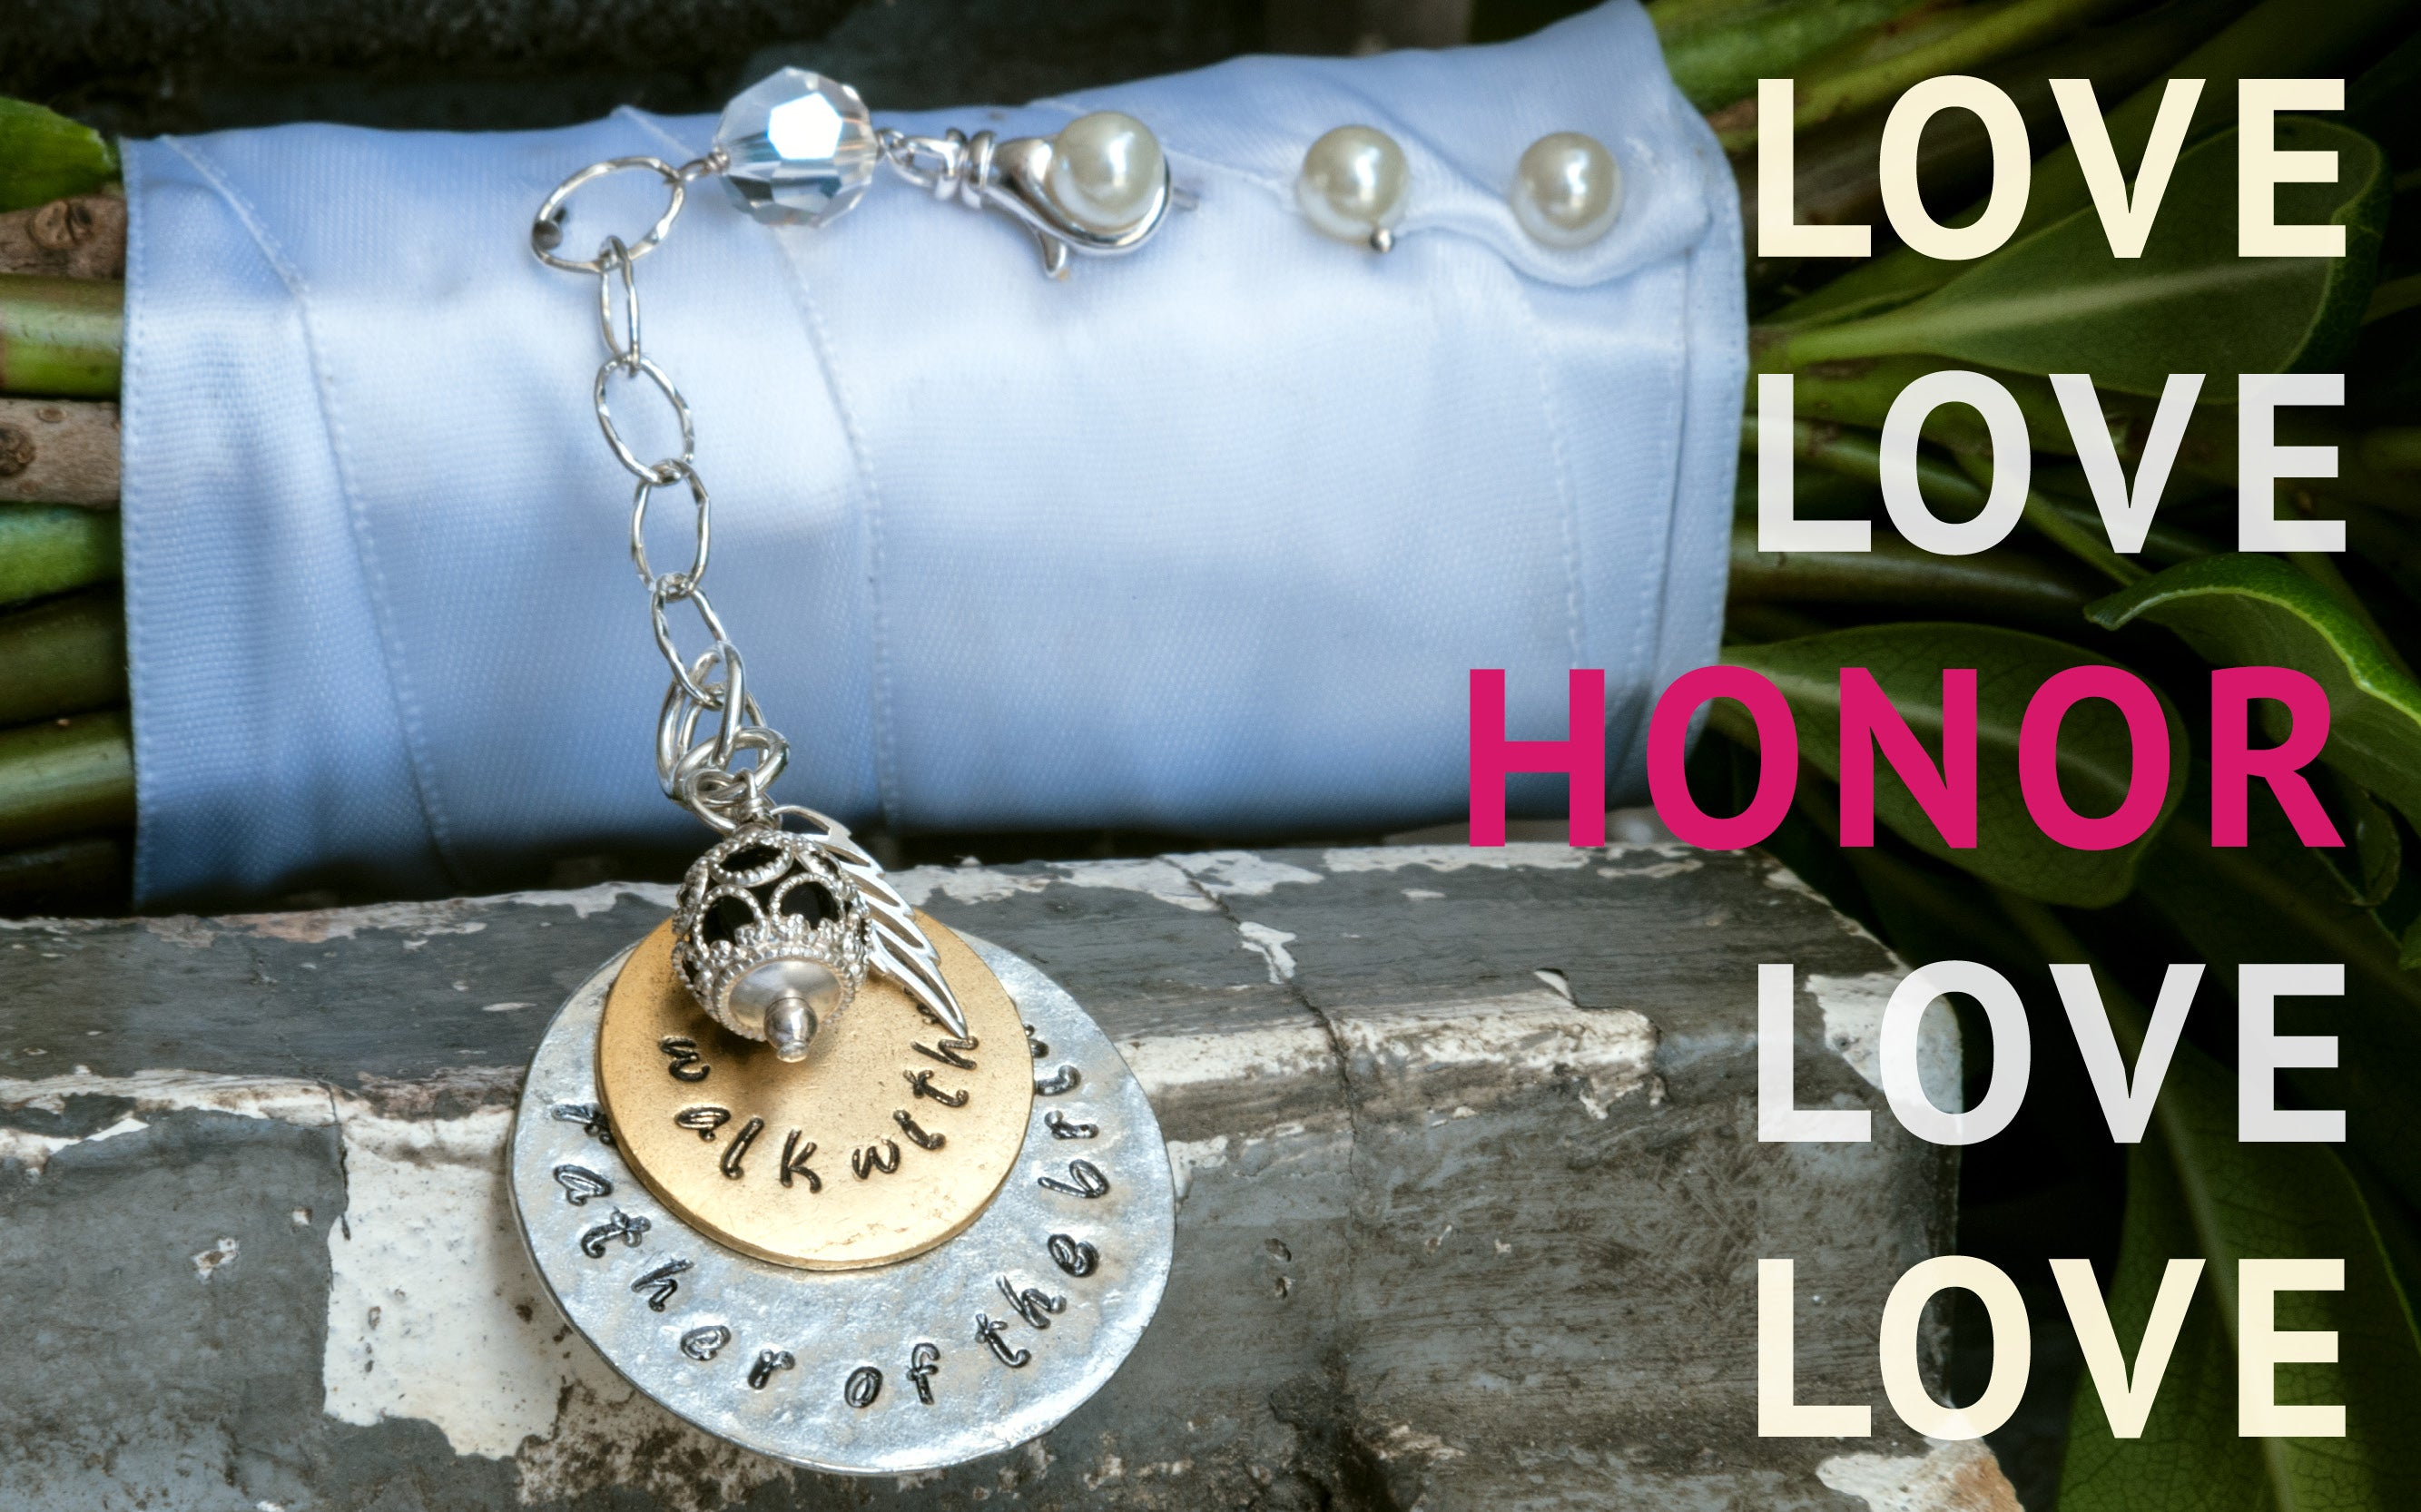 Love Honor collection: charms and pins to honor the memory of those you love on your wedding day